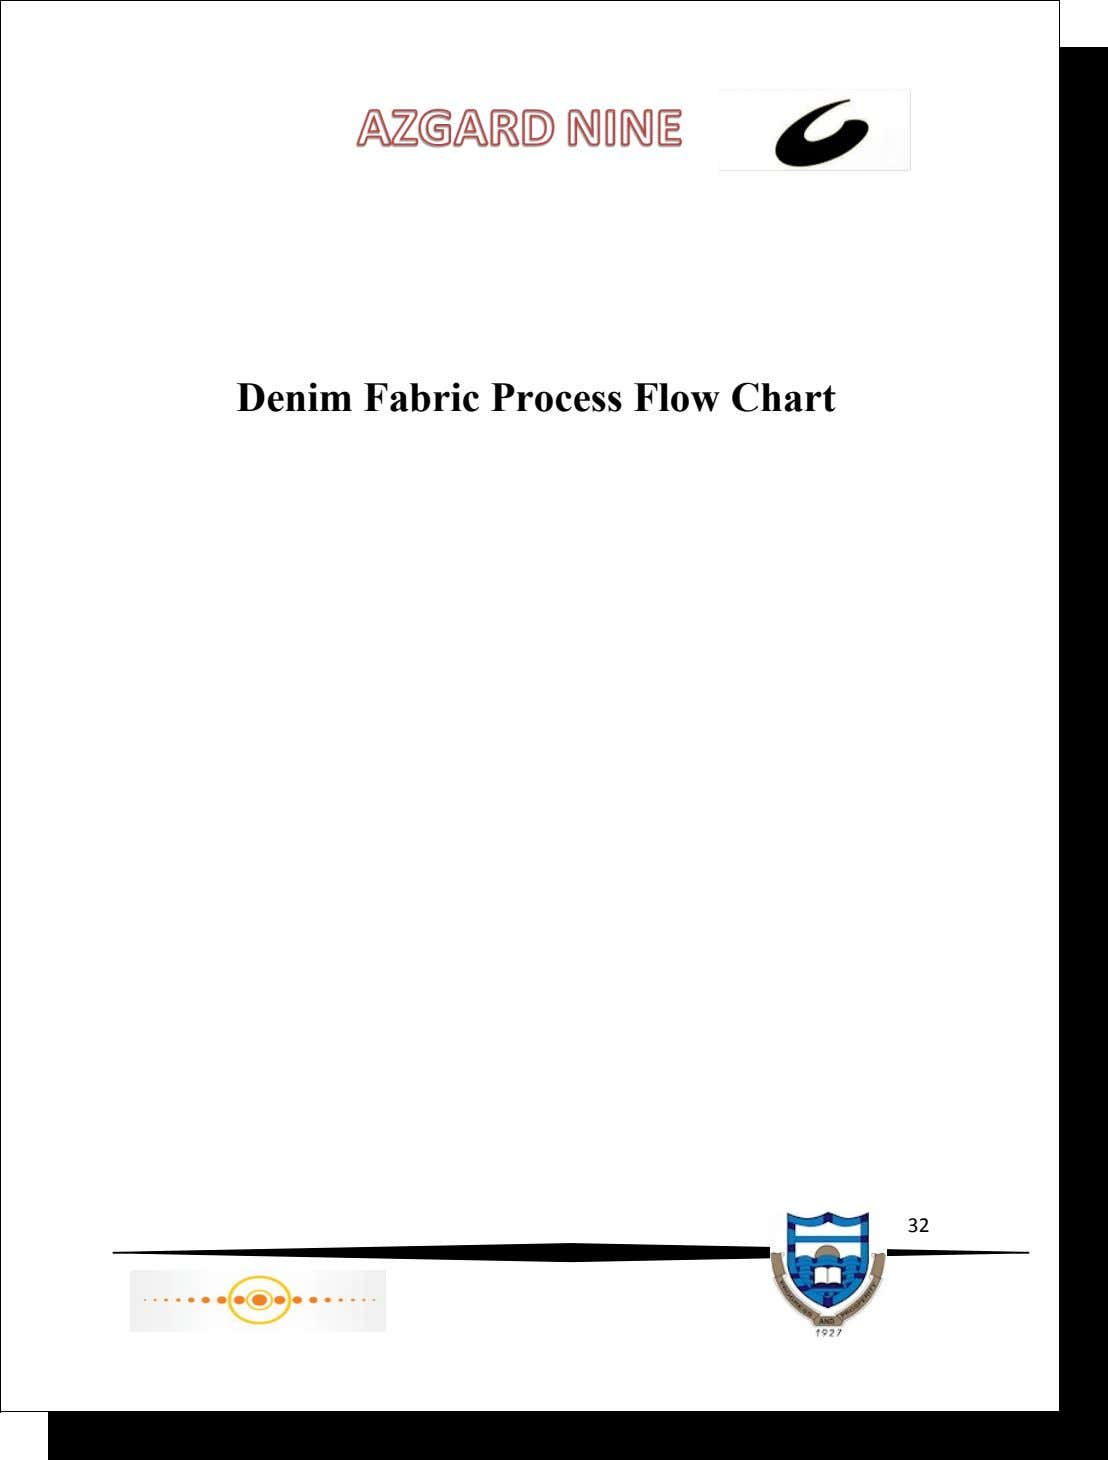 Denim Fabric Process Flow Chart 32